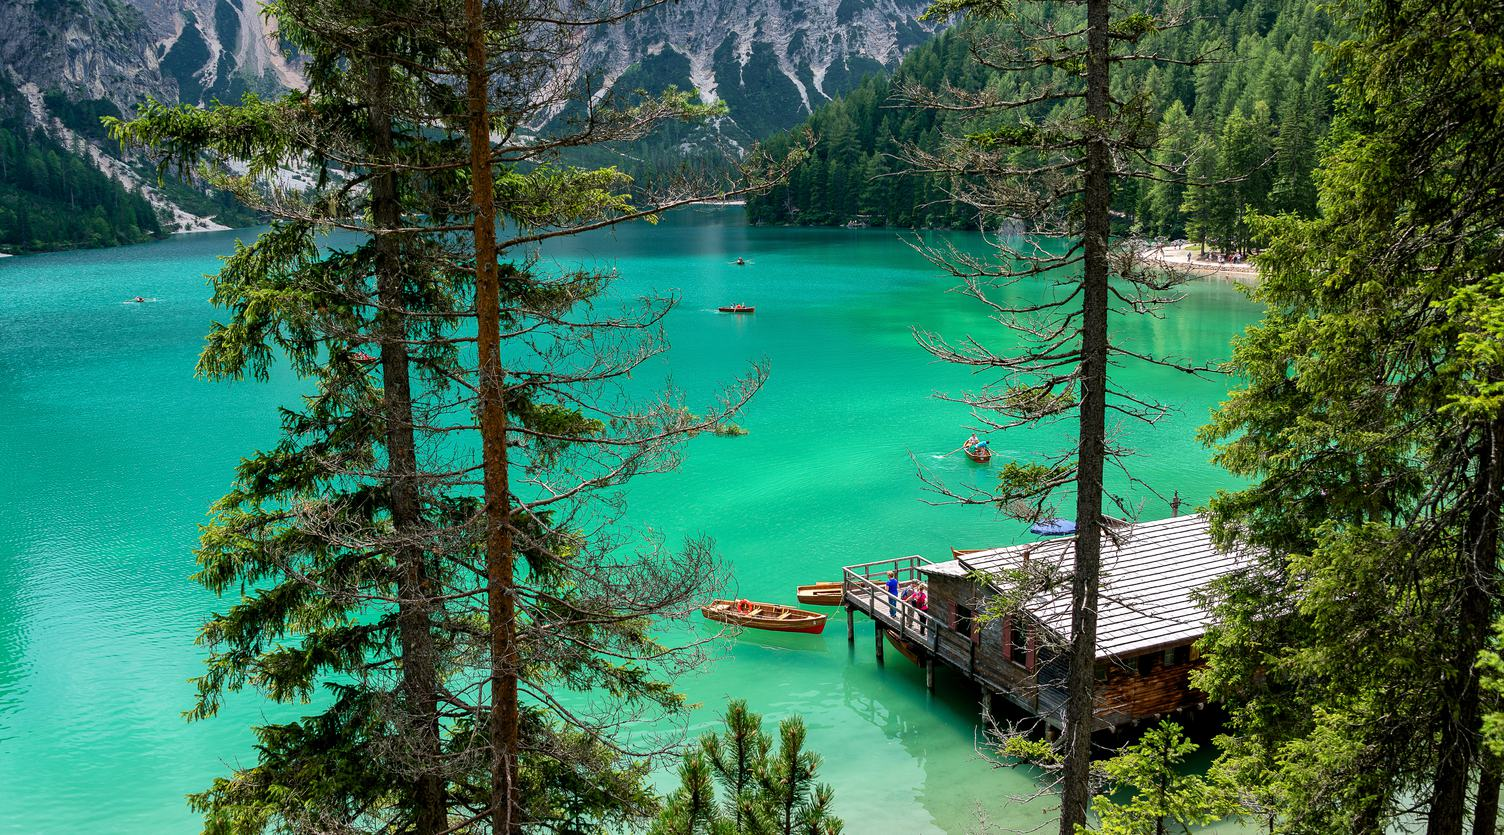 View of a Cabin by a Mountain Lake